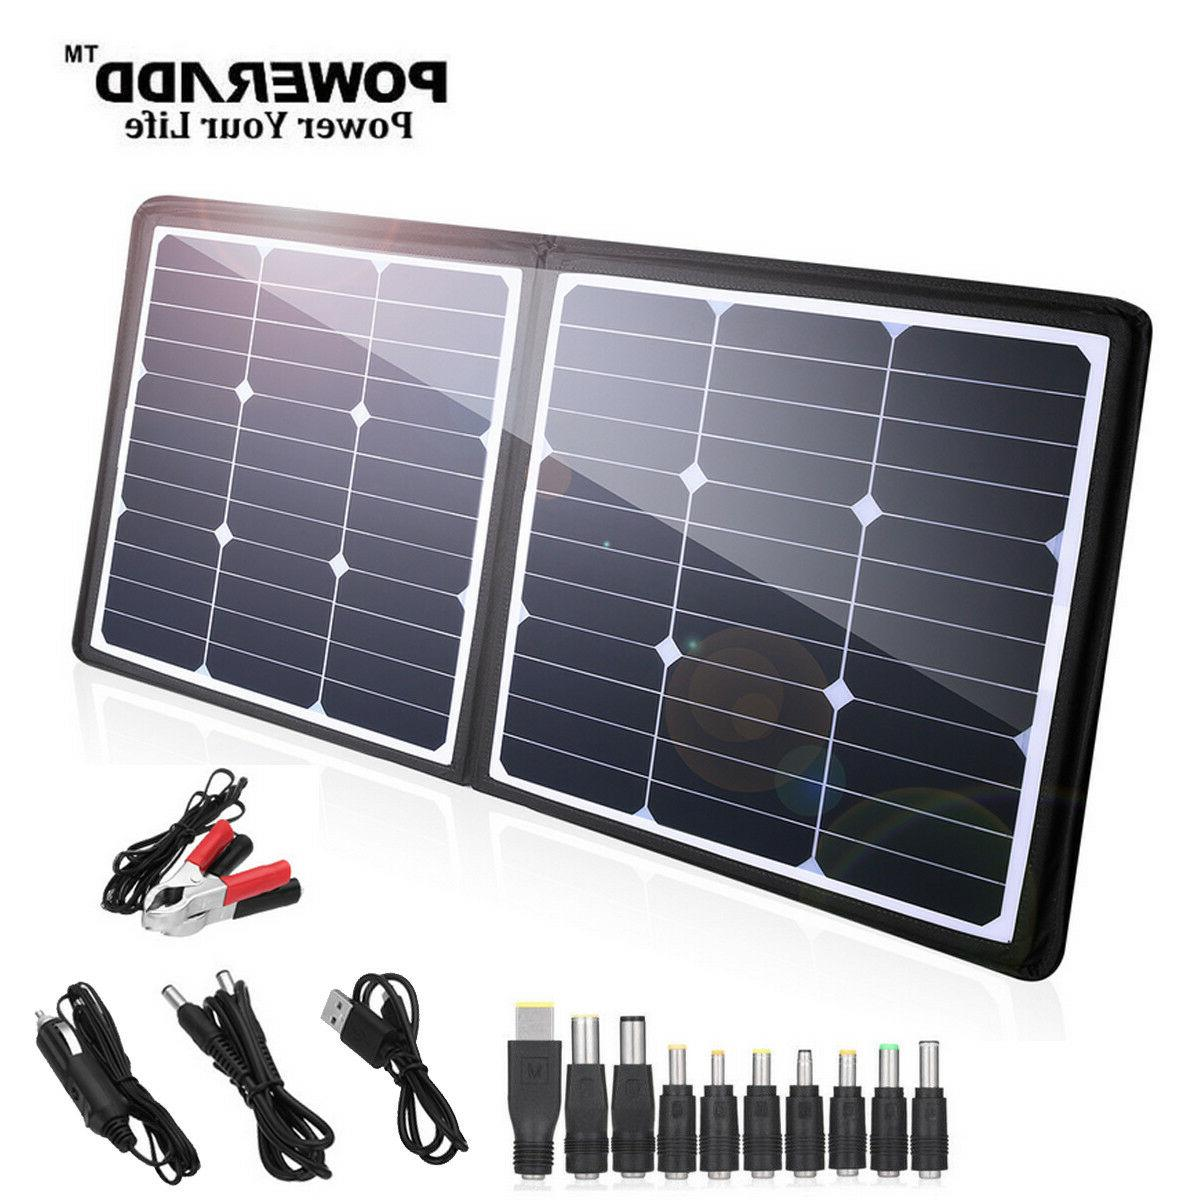 Poweradd 50W 12V 18V Foldable Solar Panel Charger for Phone